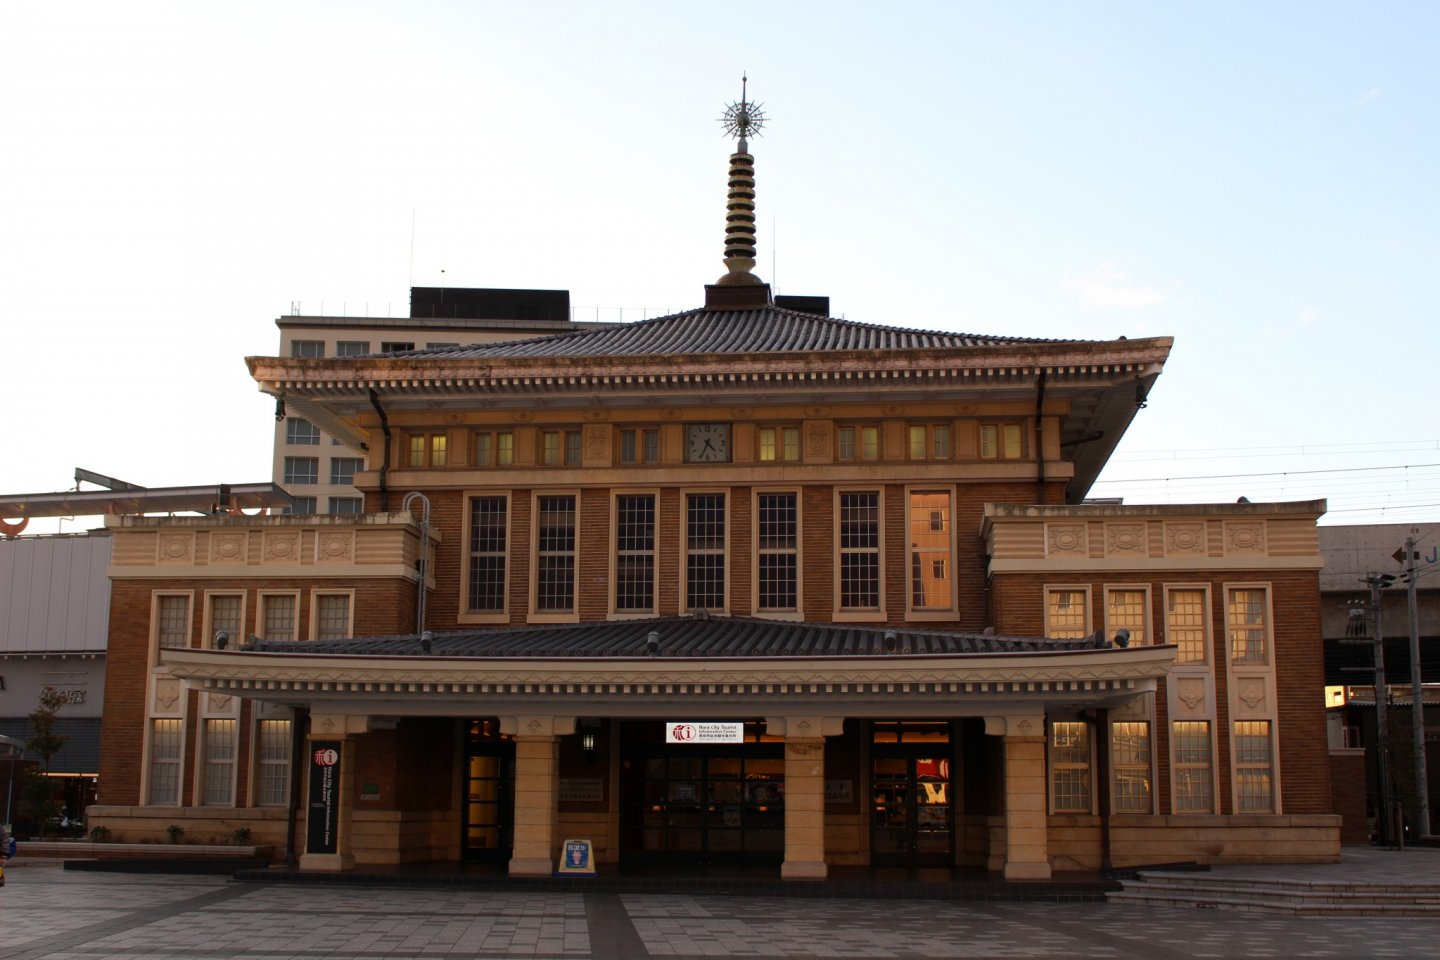 The historic former JR Nara Station building is now home to the Nara City Tourist Information Center